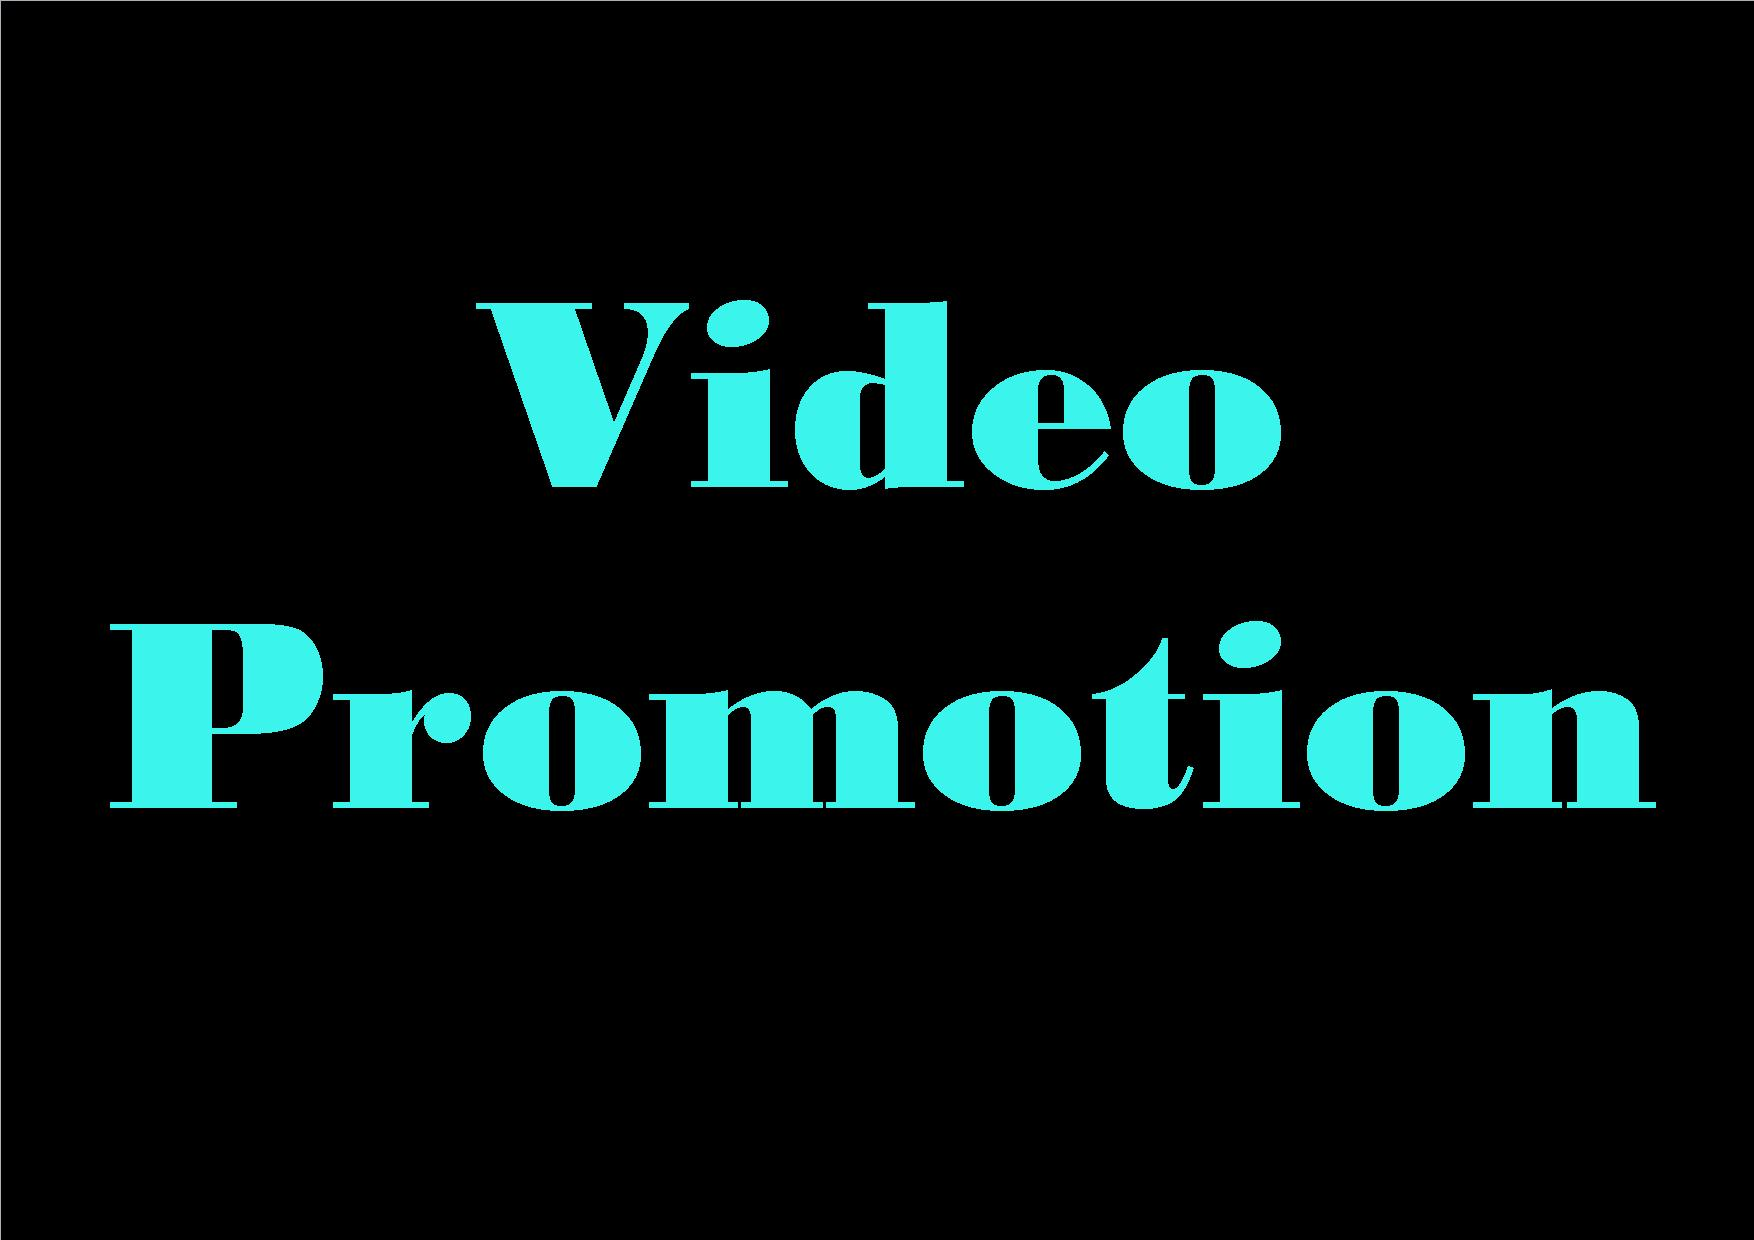 3000+ High Retention Video Promotion